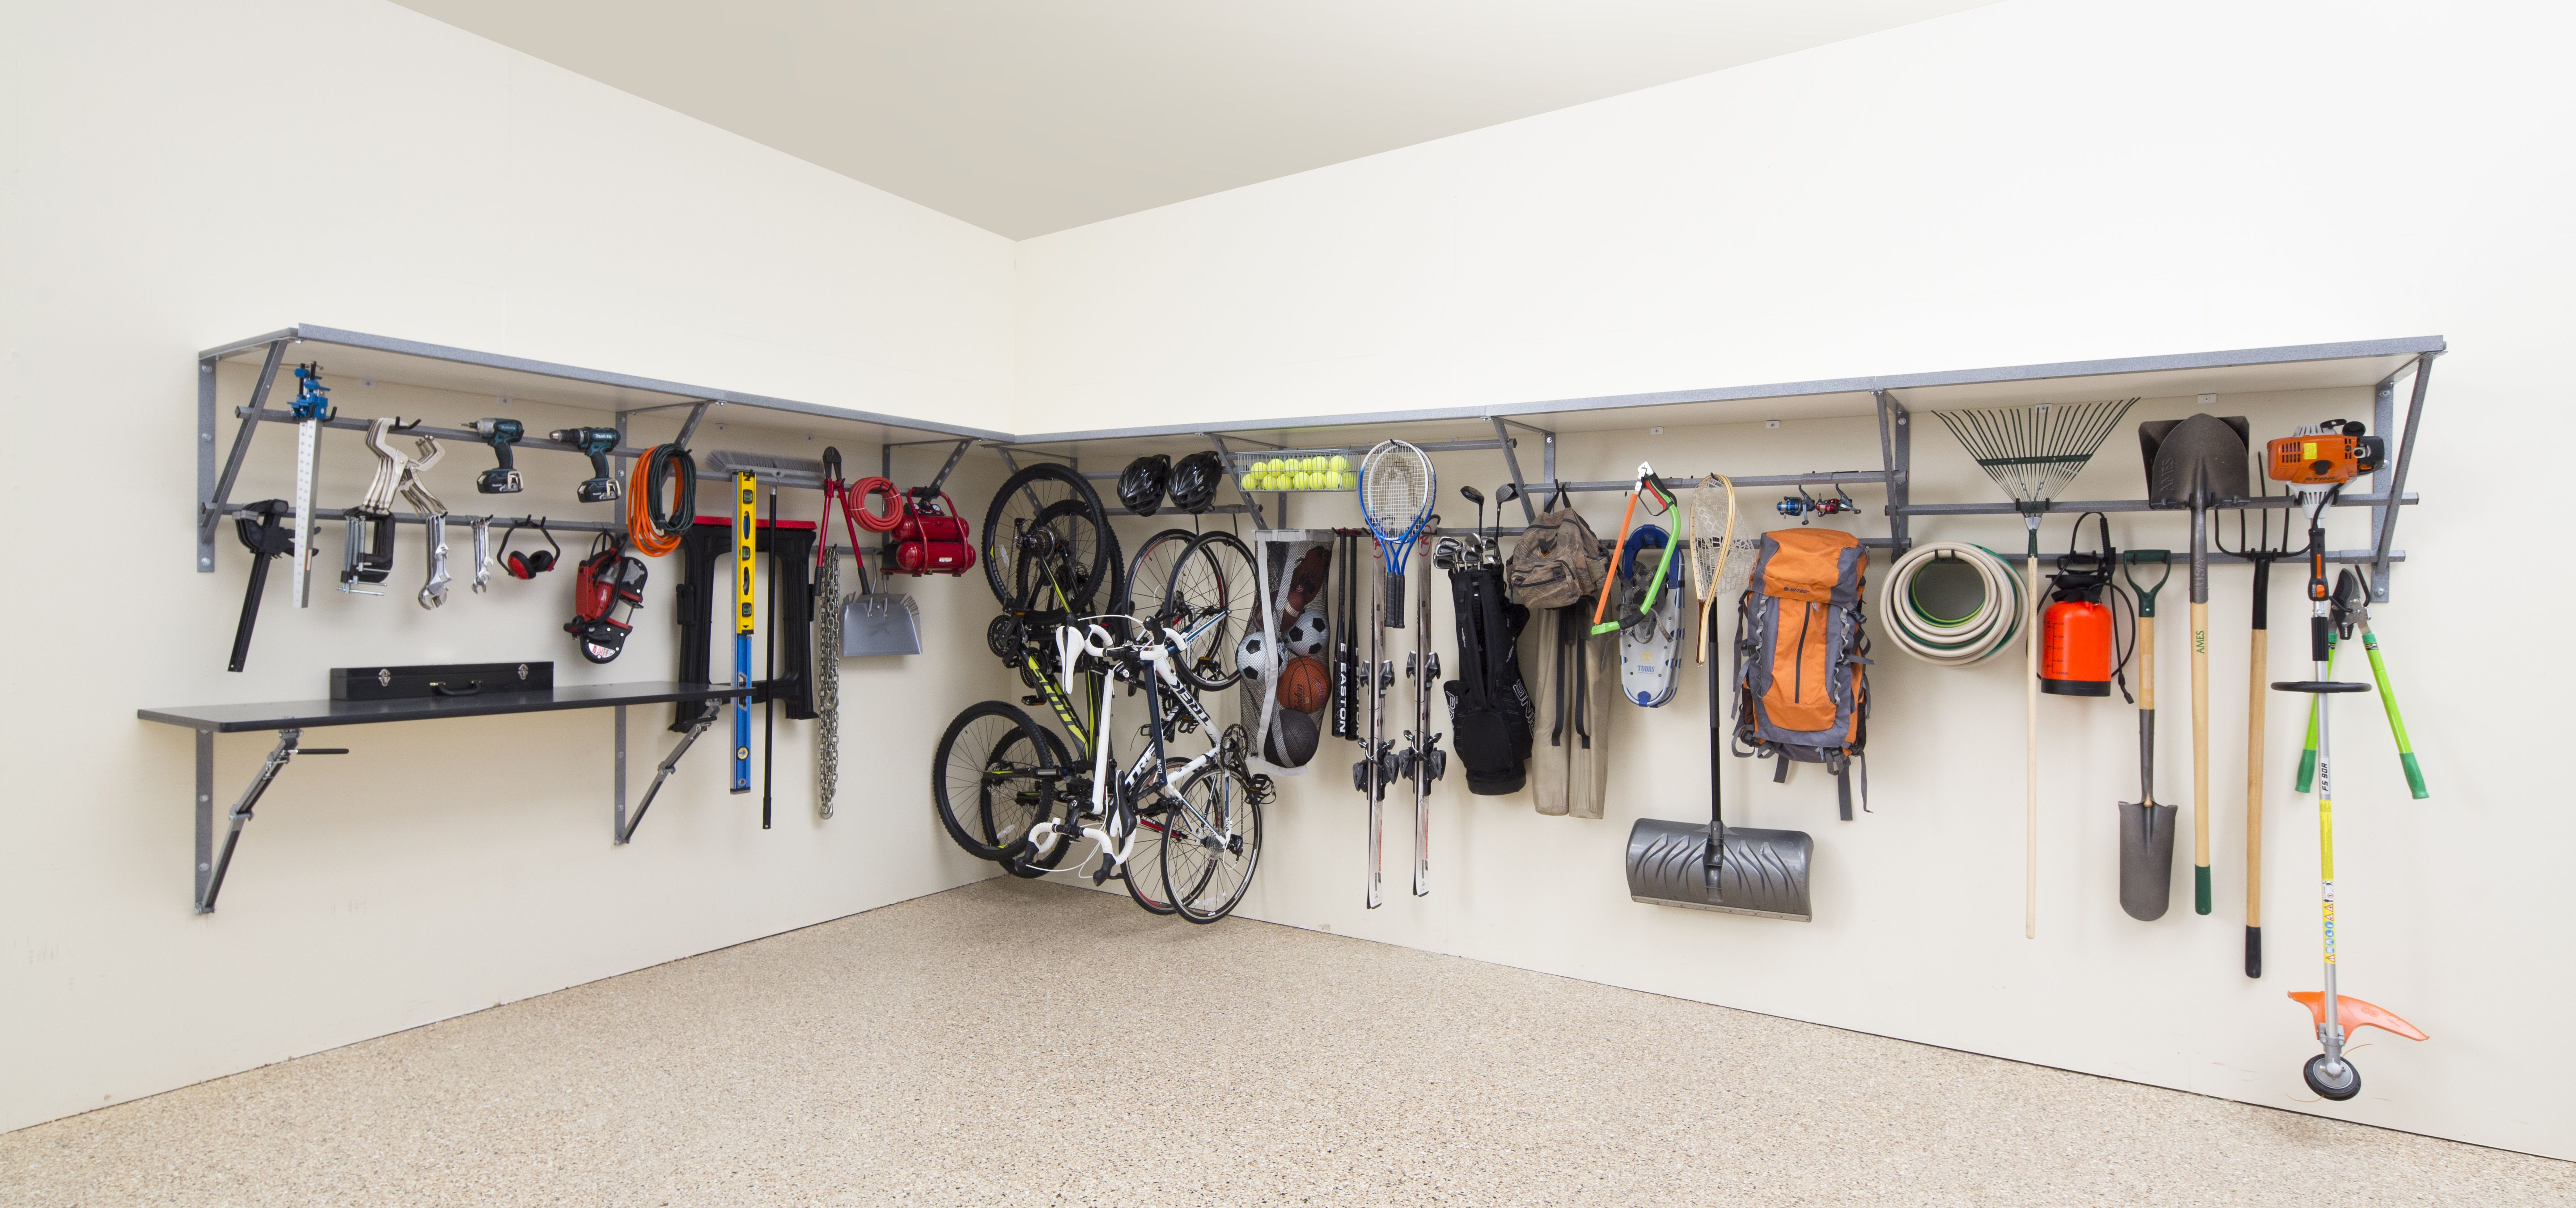 Just One 4 Ft Shelving Unit From Monkey Bar Storage Can Hold Up To 1 000 Lbs Love The Overhead Garage Storage Garage Storage Solutions Garage Storage Systems